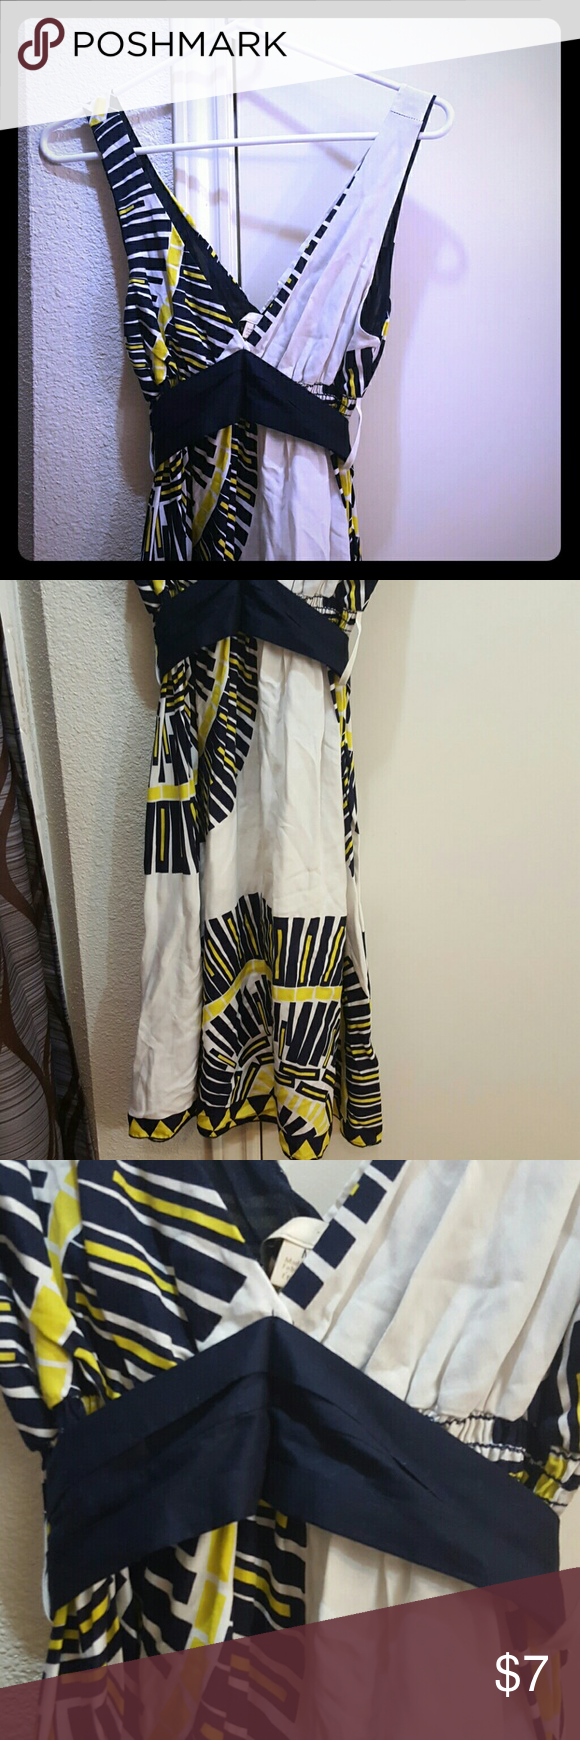 Forever dress st dresses summer dresses and blue yellow